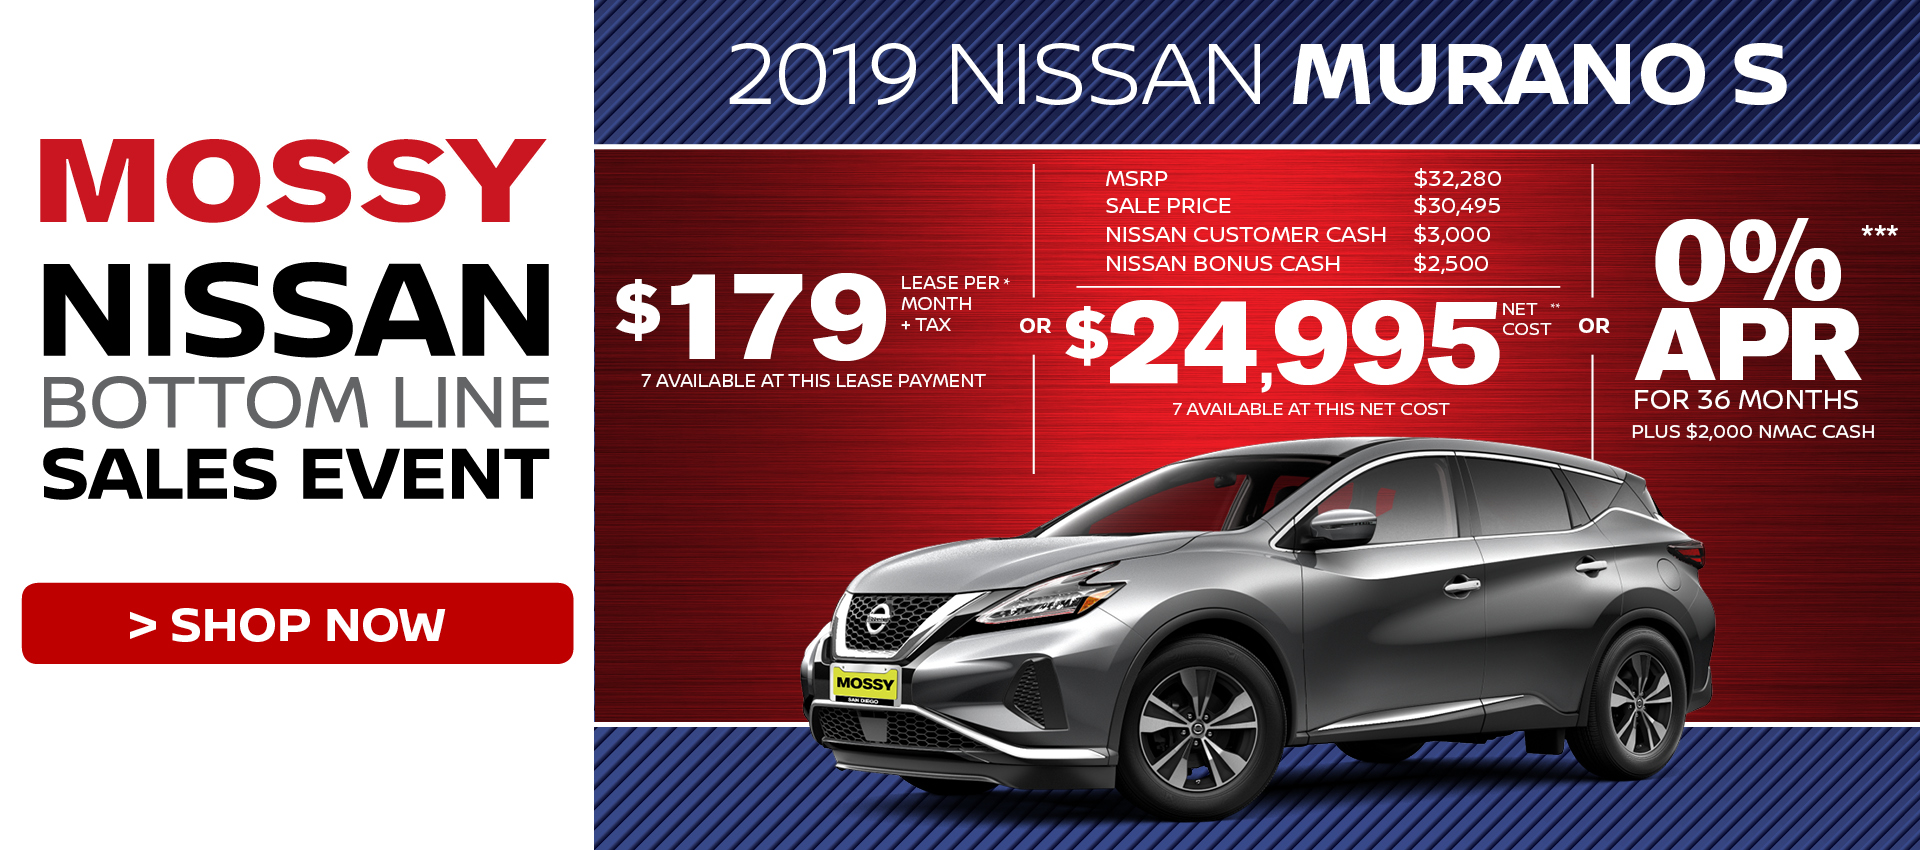 Mossy Nissan - Nissan Murano $24,995 Purchase HP